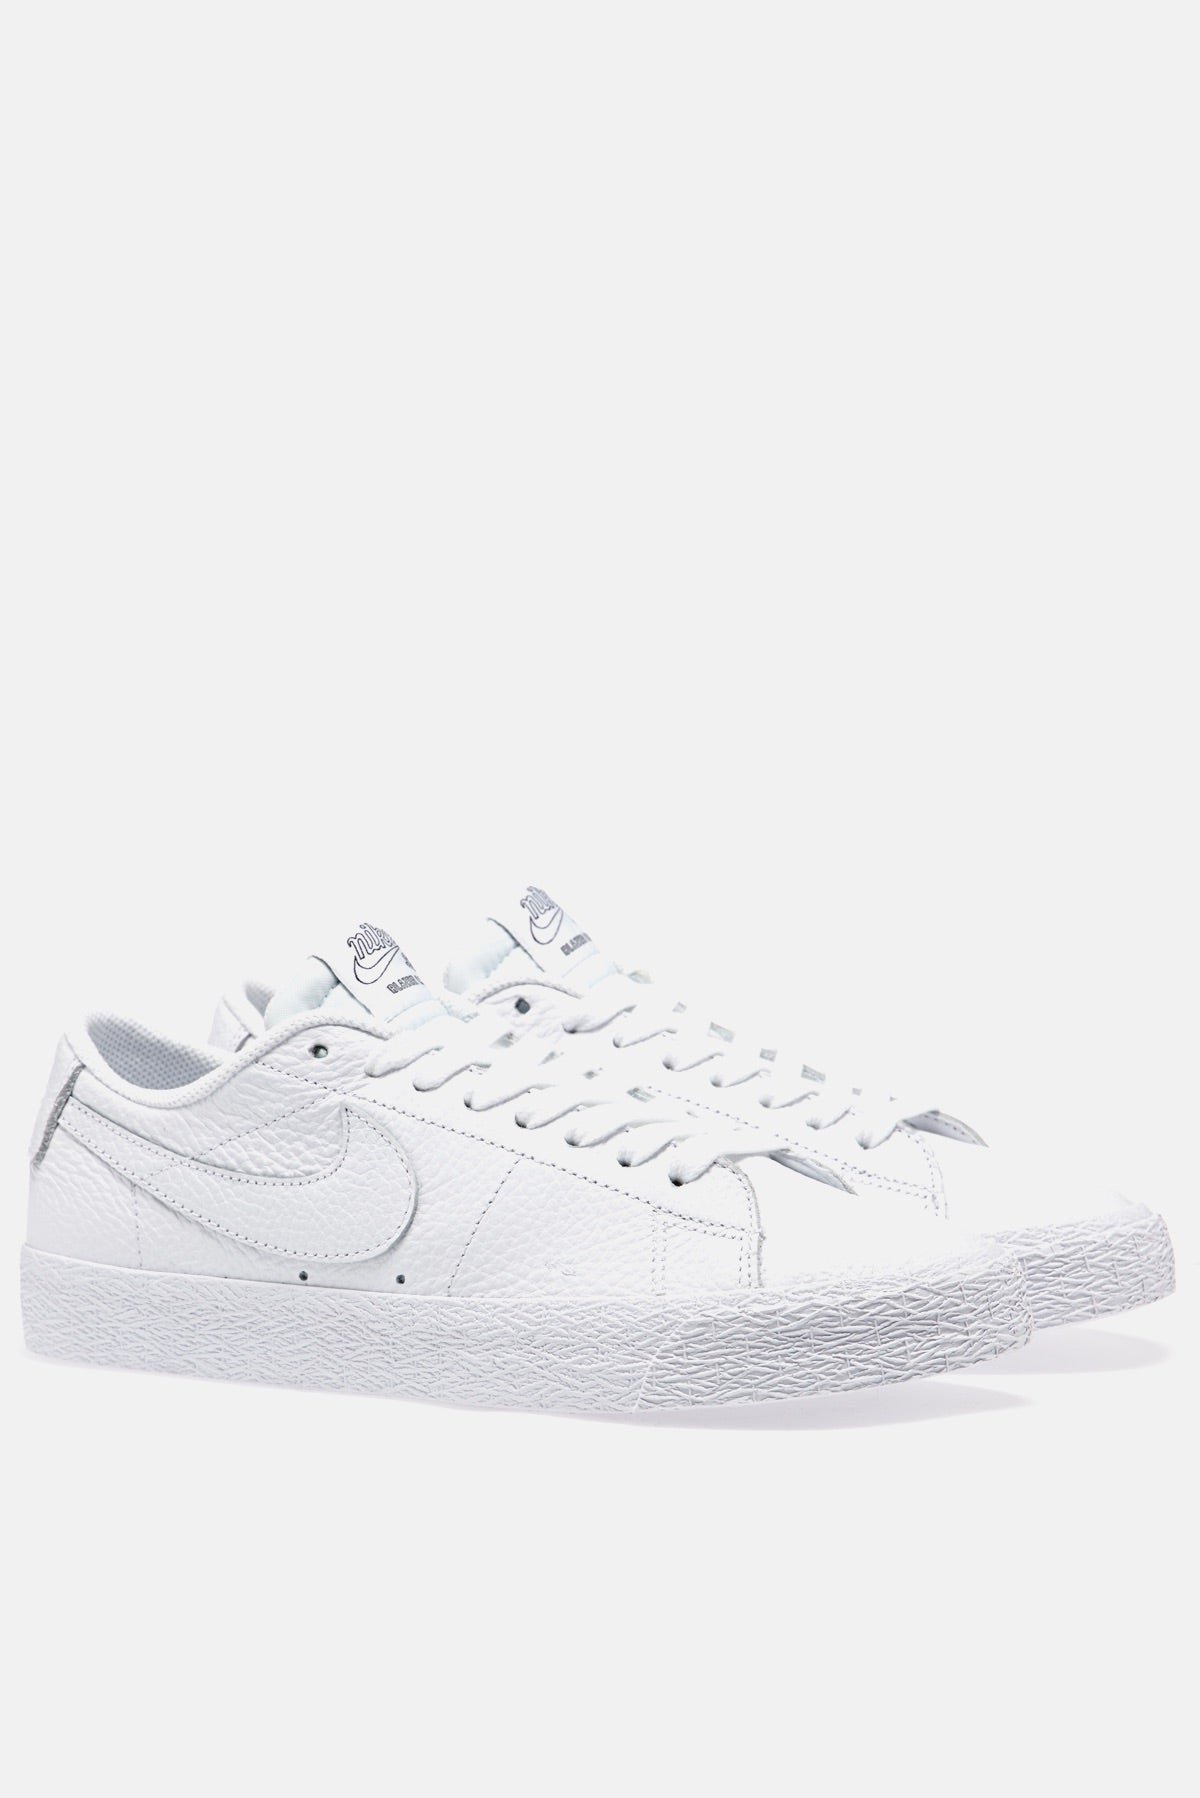 a731449e493 Nike SB Zoom Blazer Low Shoes available from Priory